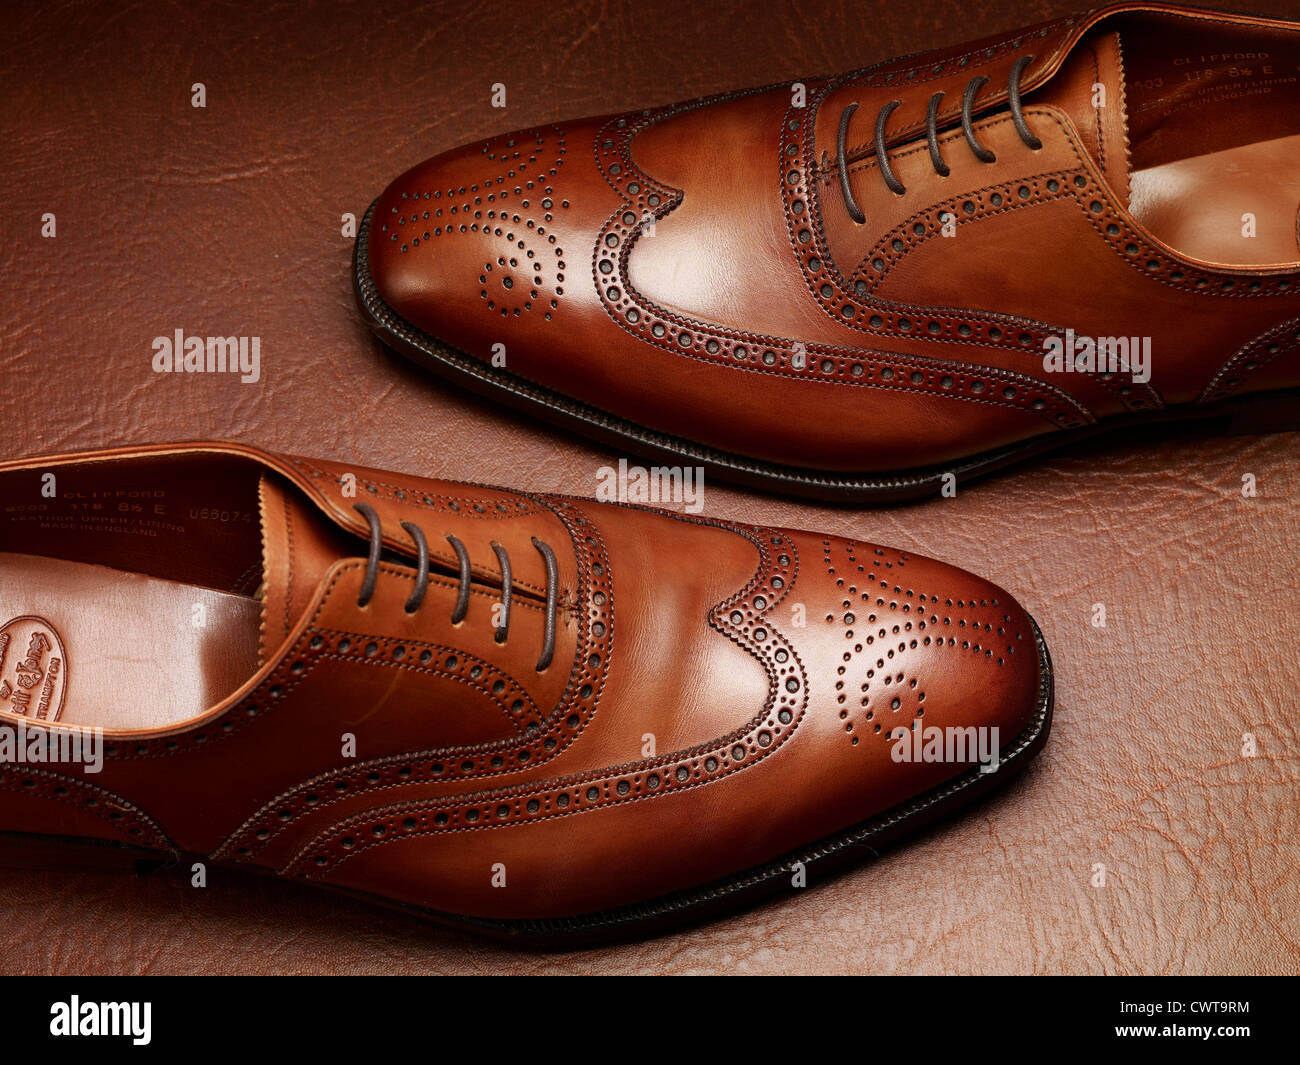 expensive luxory brown leather brogue shoes on a vintage